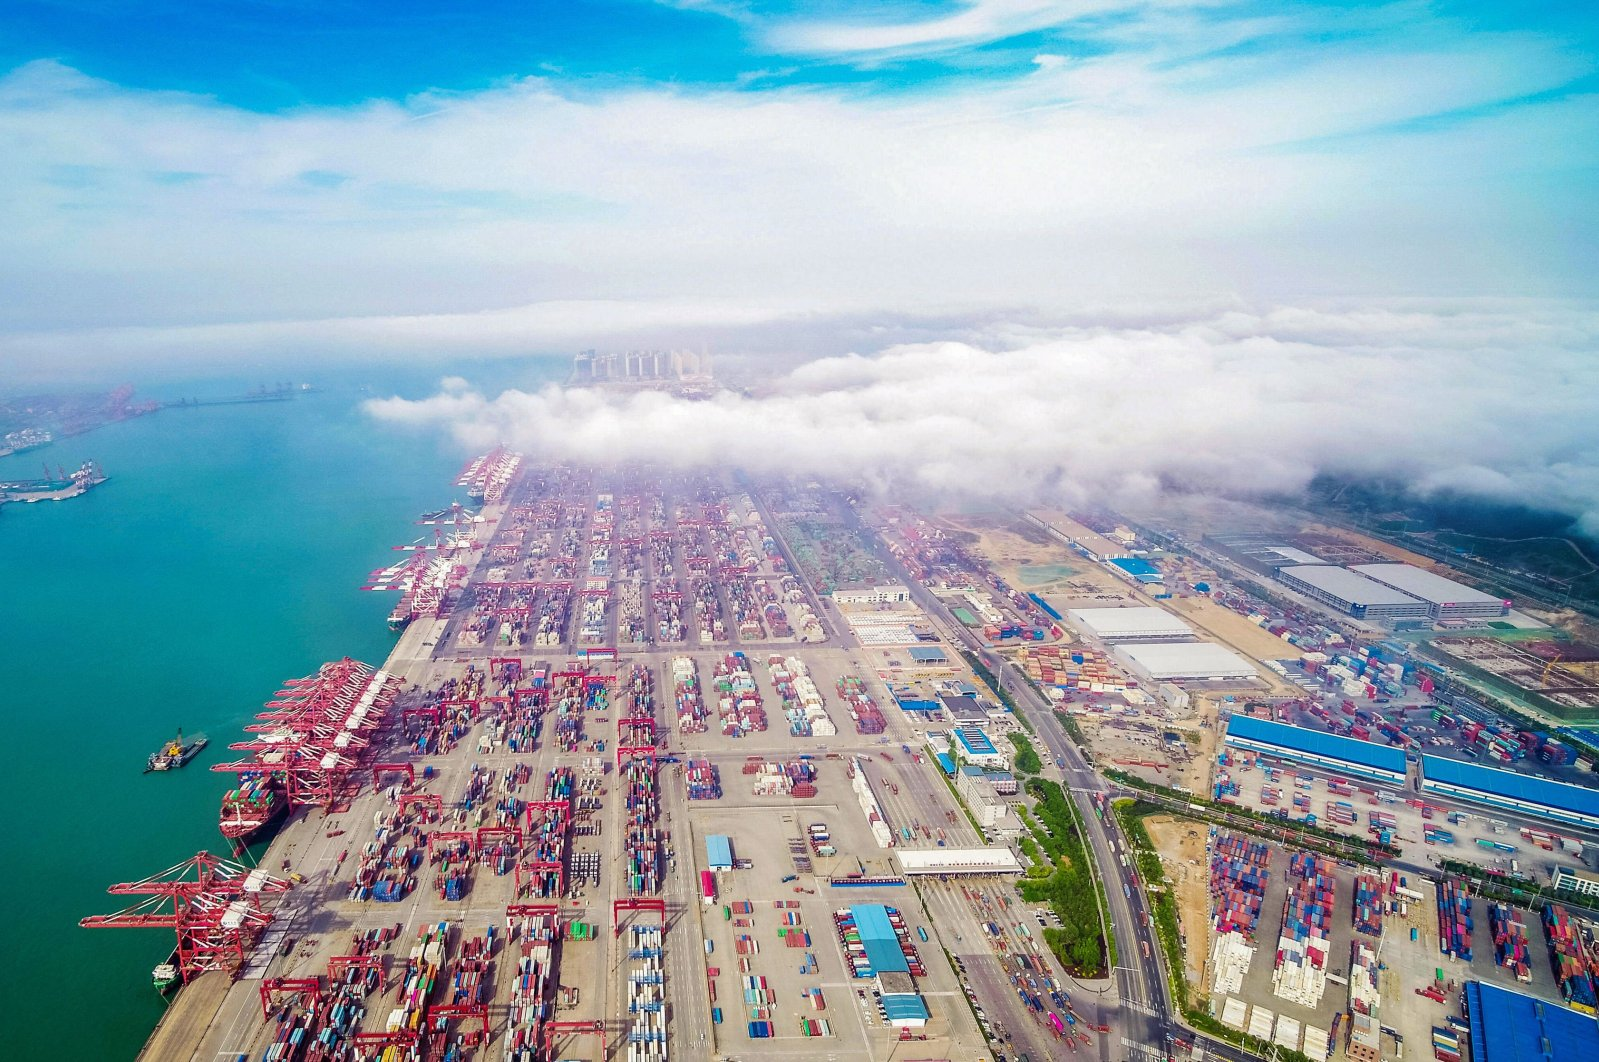 A view of a port in Qingdao in China's eastern Shandong province, May 14, 2019. (AFP Photo)